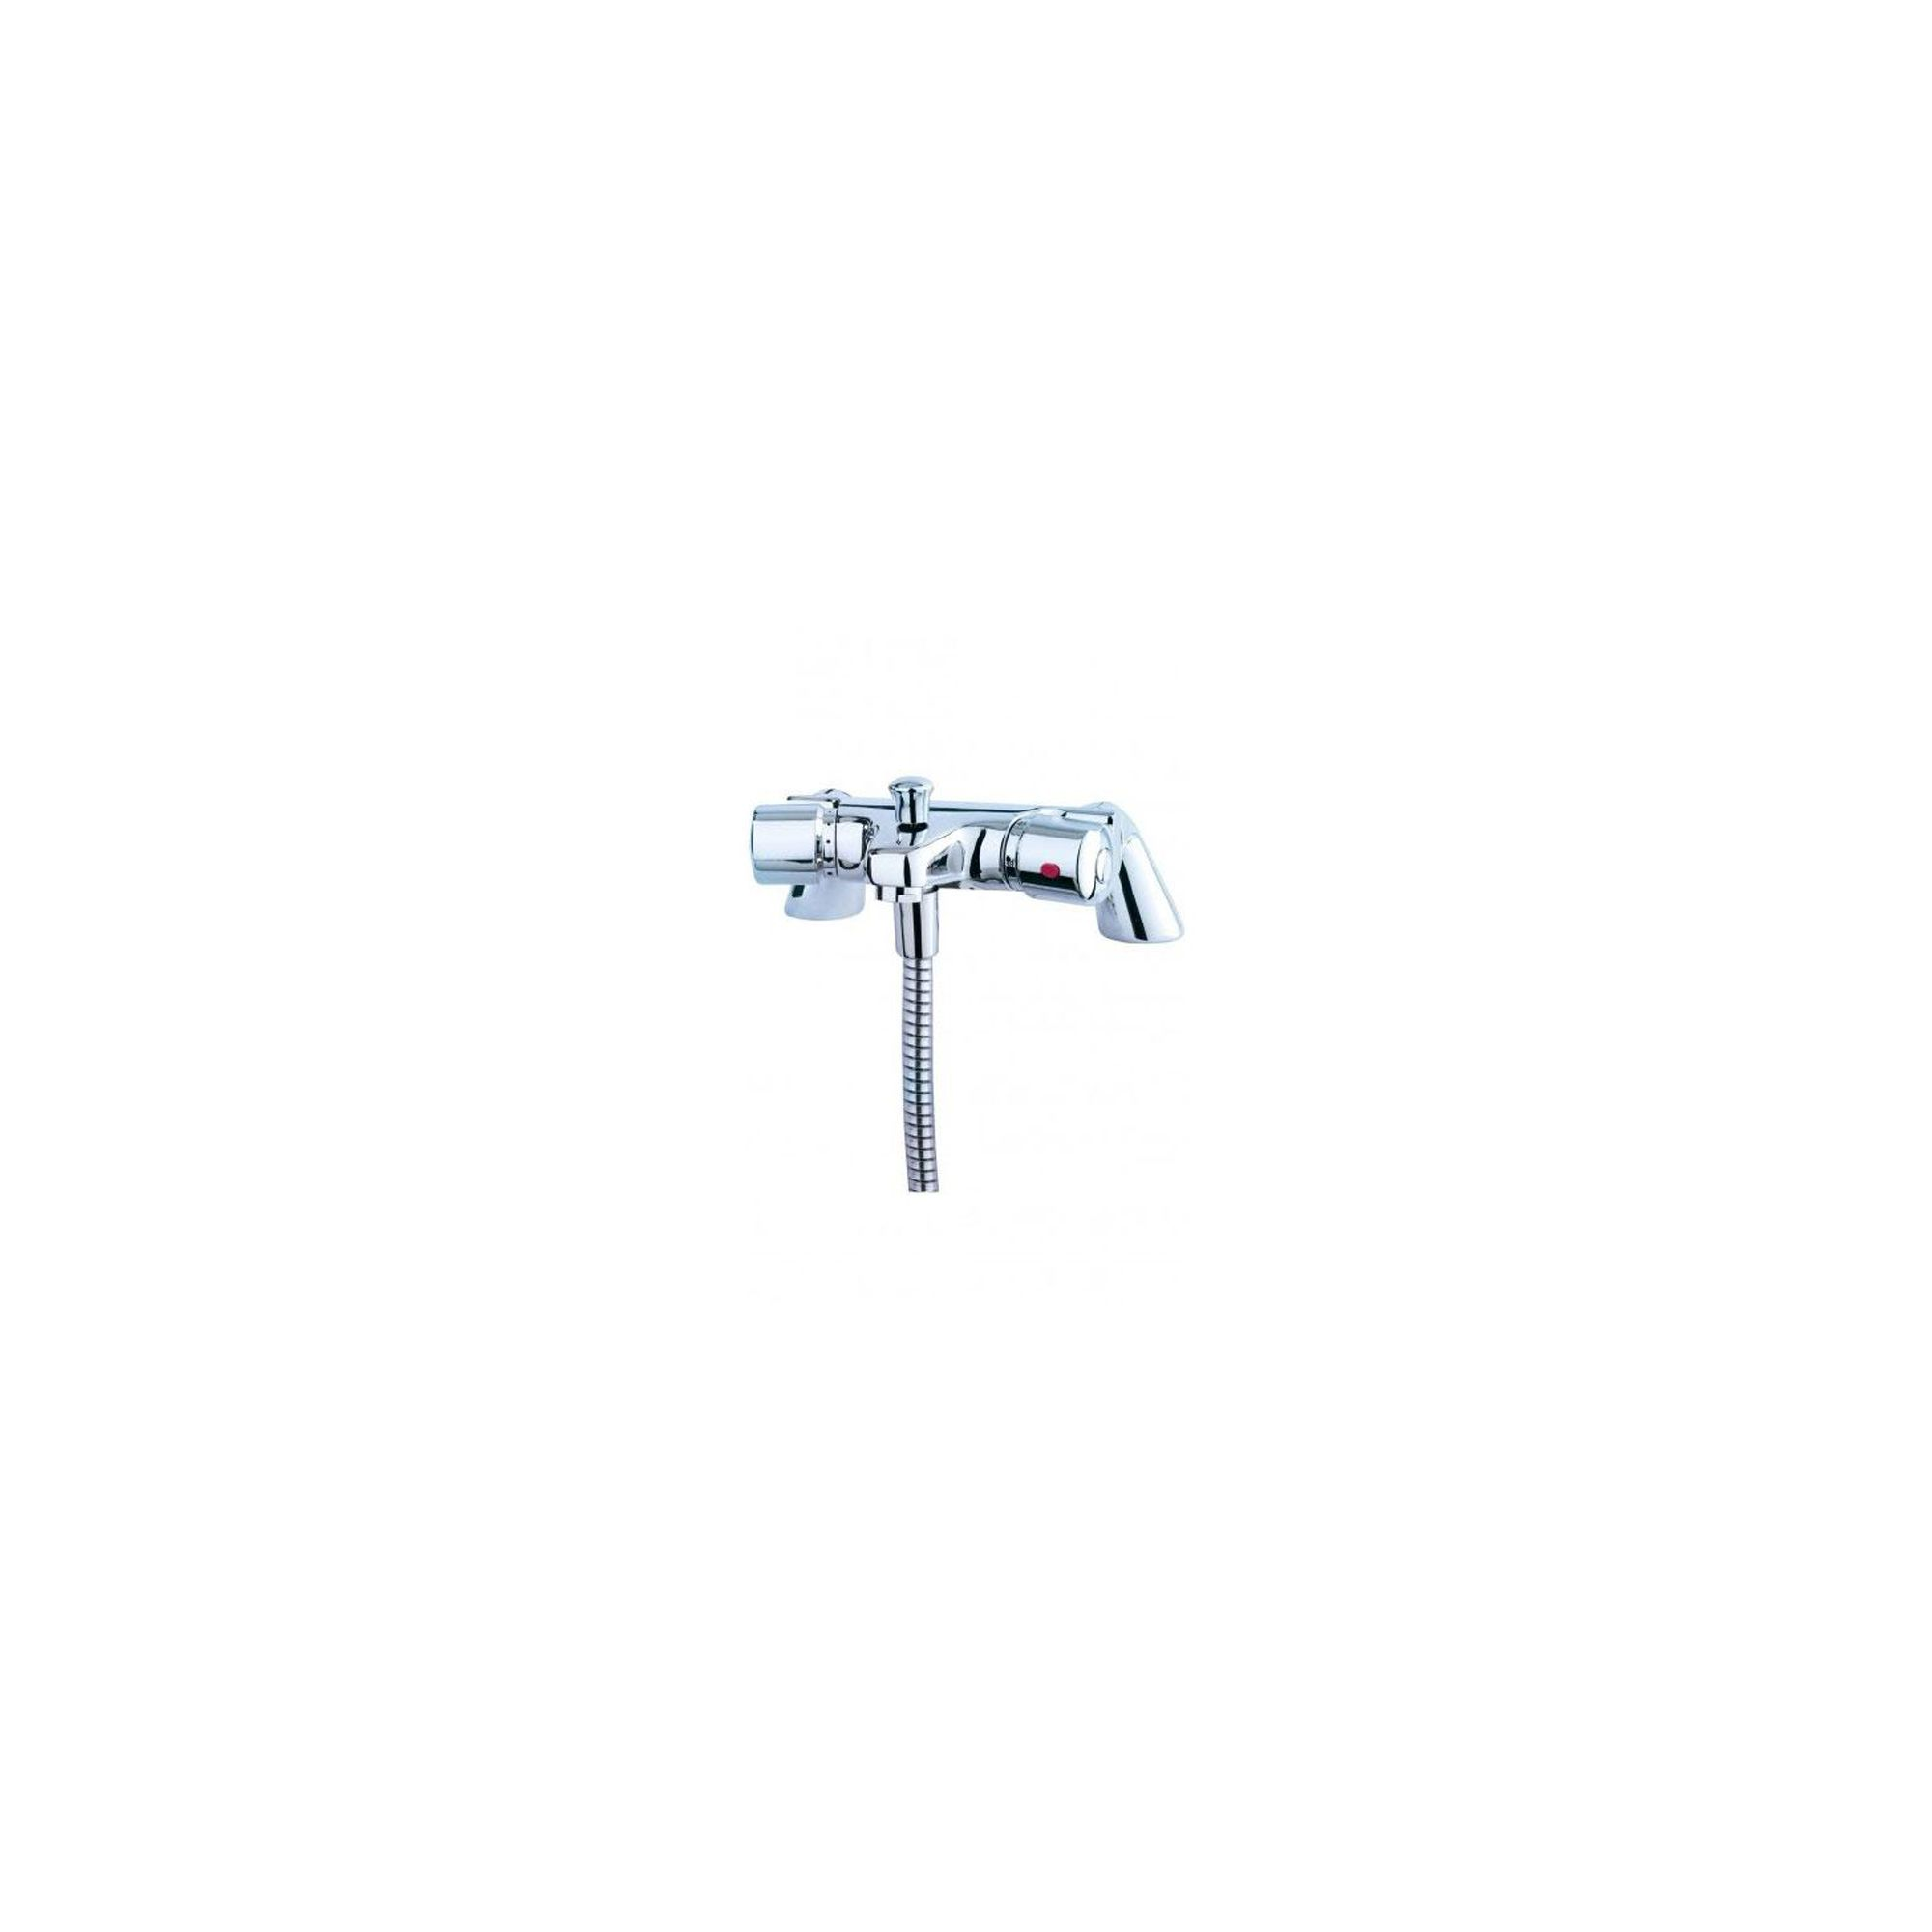 Triton Aire Thermostatic Bath/Shower Mixer with Wall Bracket Chrome at Tesco Direct